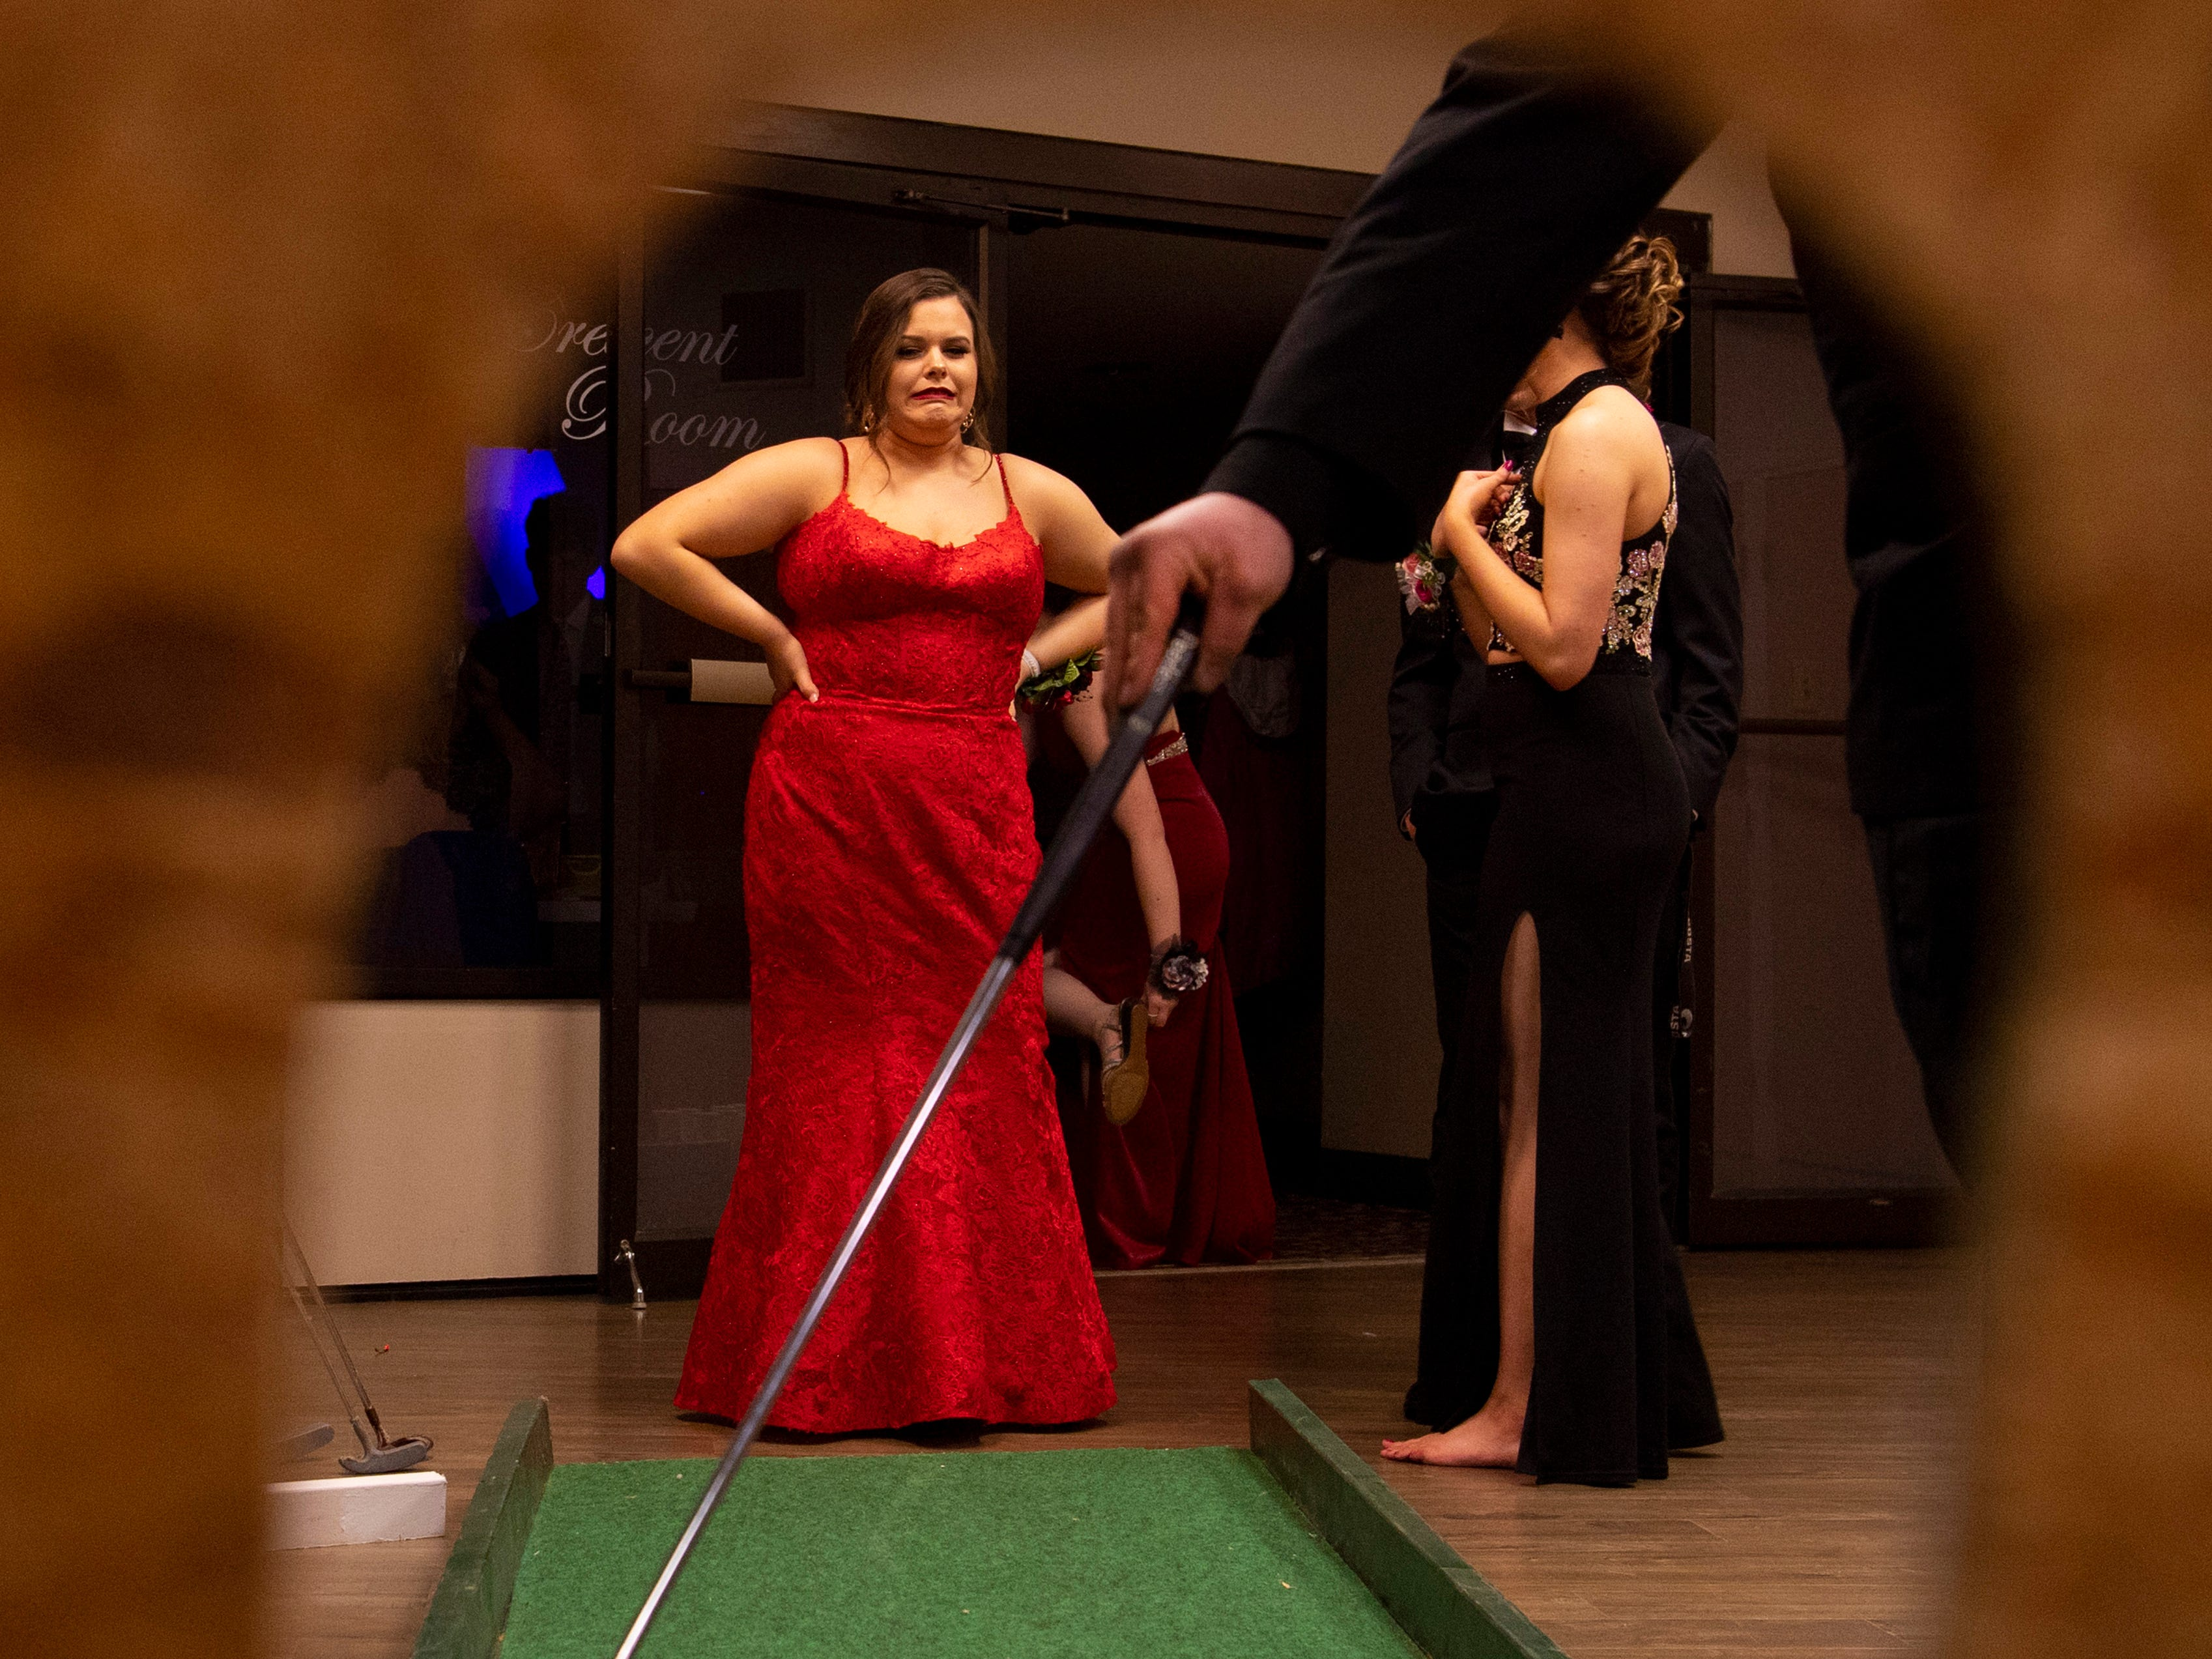 """Keily Burton, 17, reacts to her date, Wyatt Wood's, golf putt at the Hole in One game at """"The Greatest Prom on Earth"""" at Milestones Saturday night."""